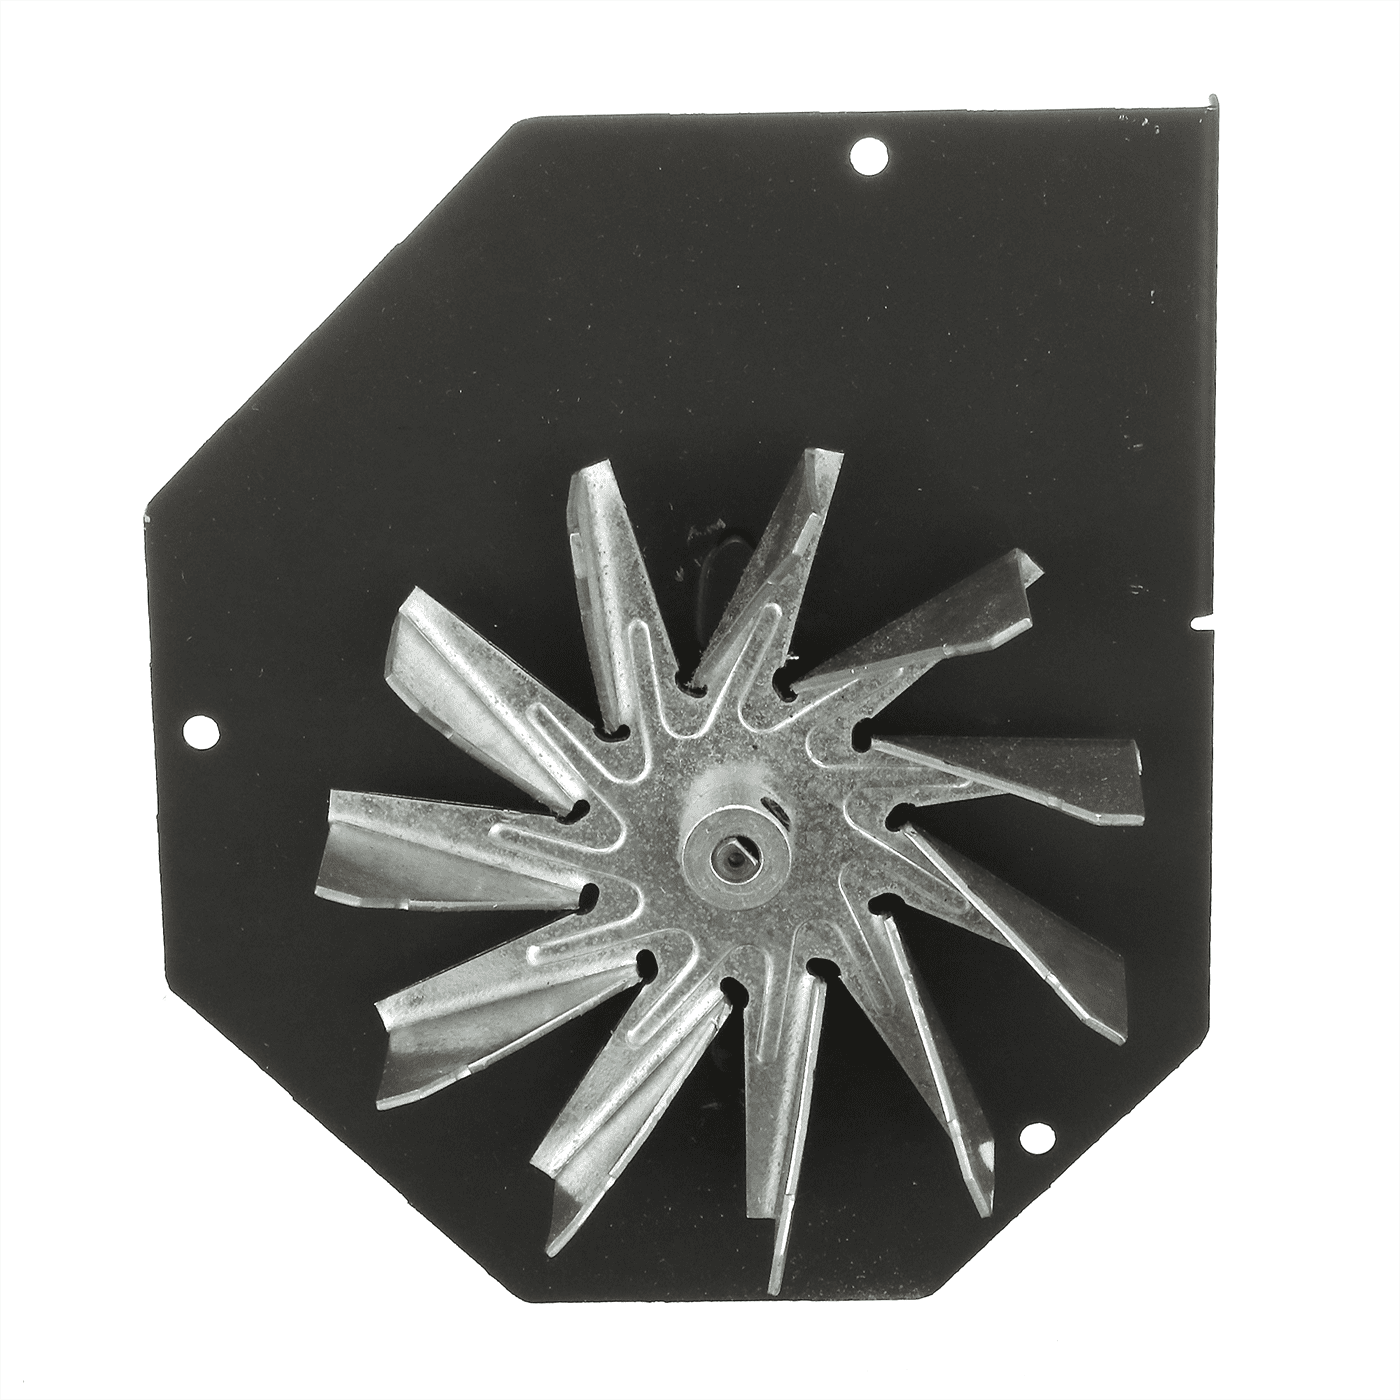 00-0005-0175IM | Thelin ExMek Fan Motor With metal fan blade & Gasket Fits All Thelin Pellet Stoves, 00-0005-0175IM